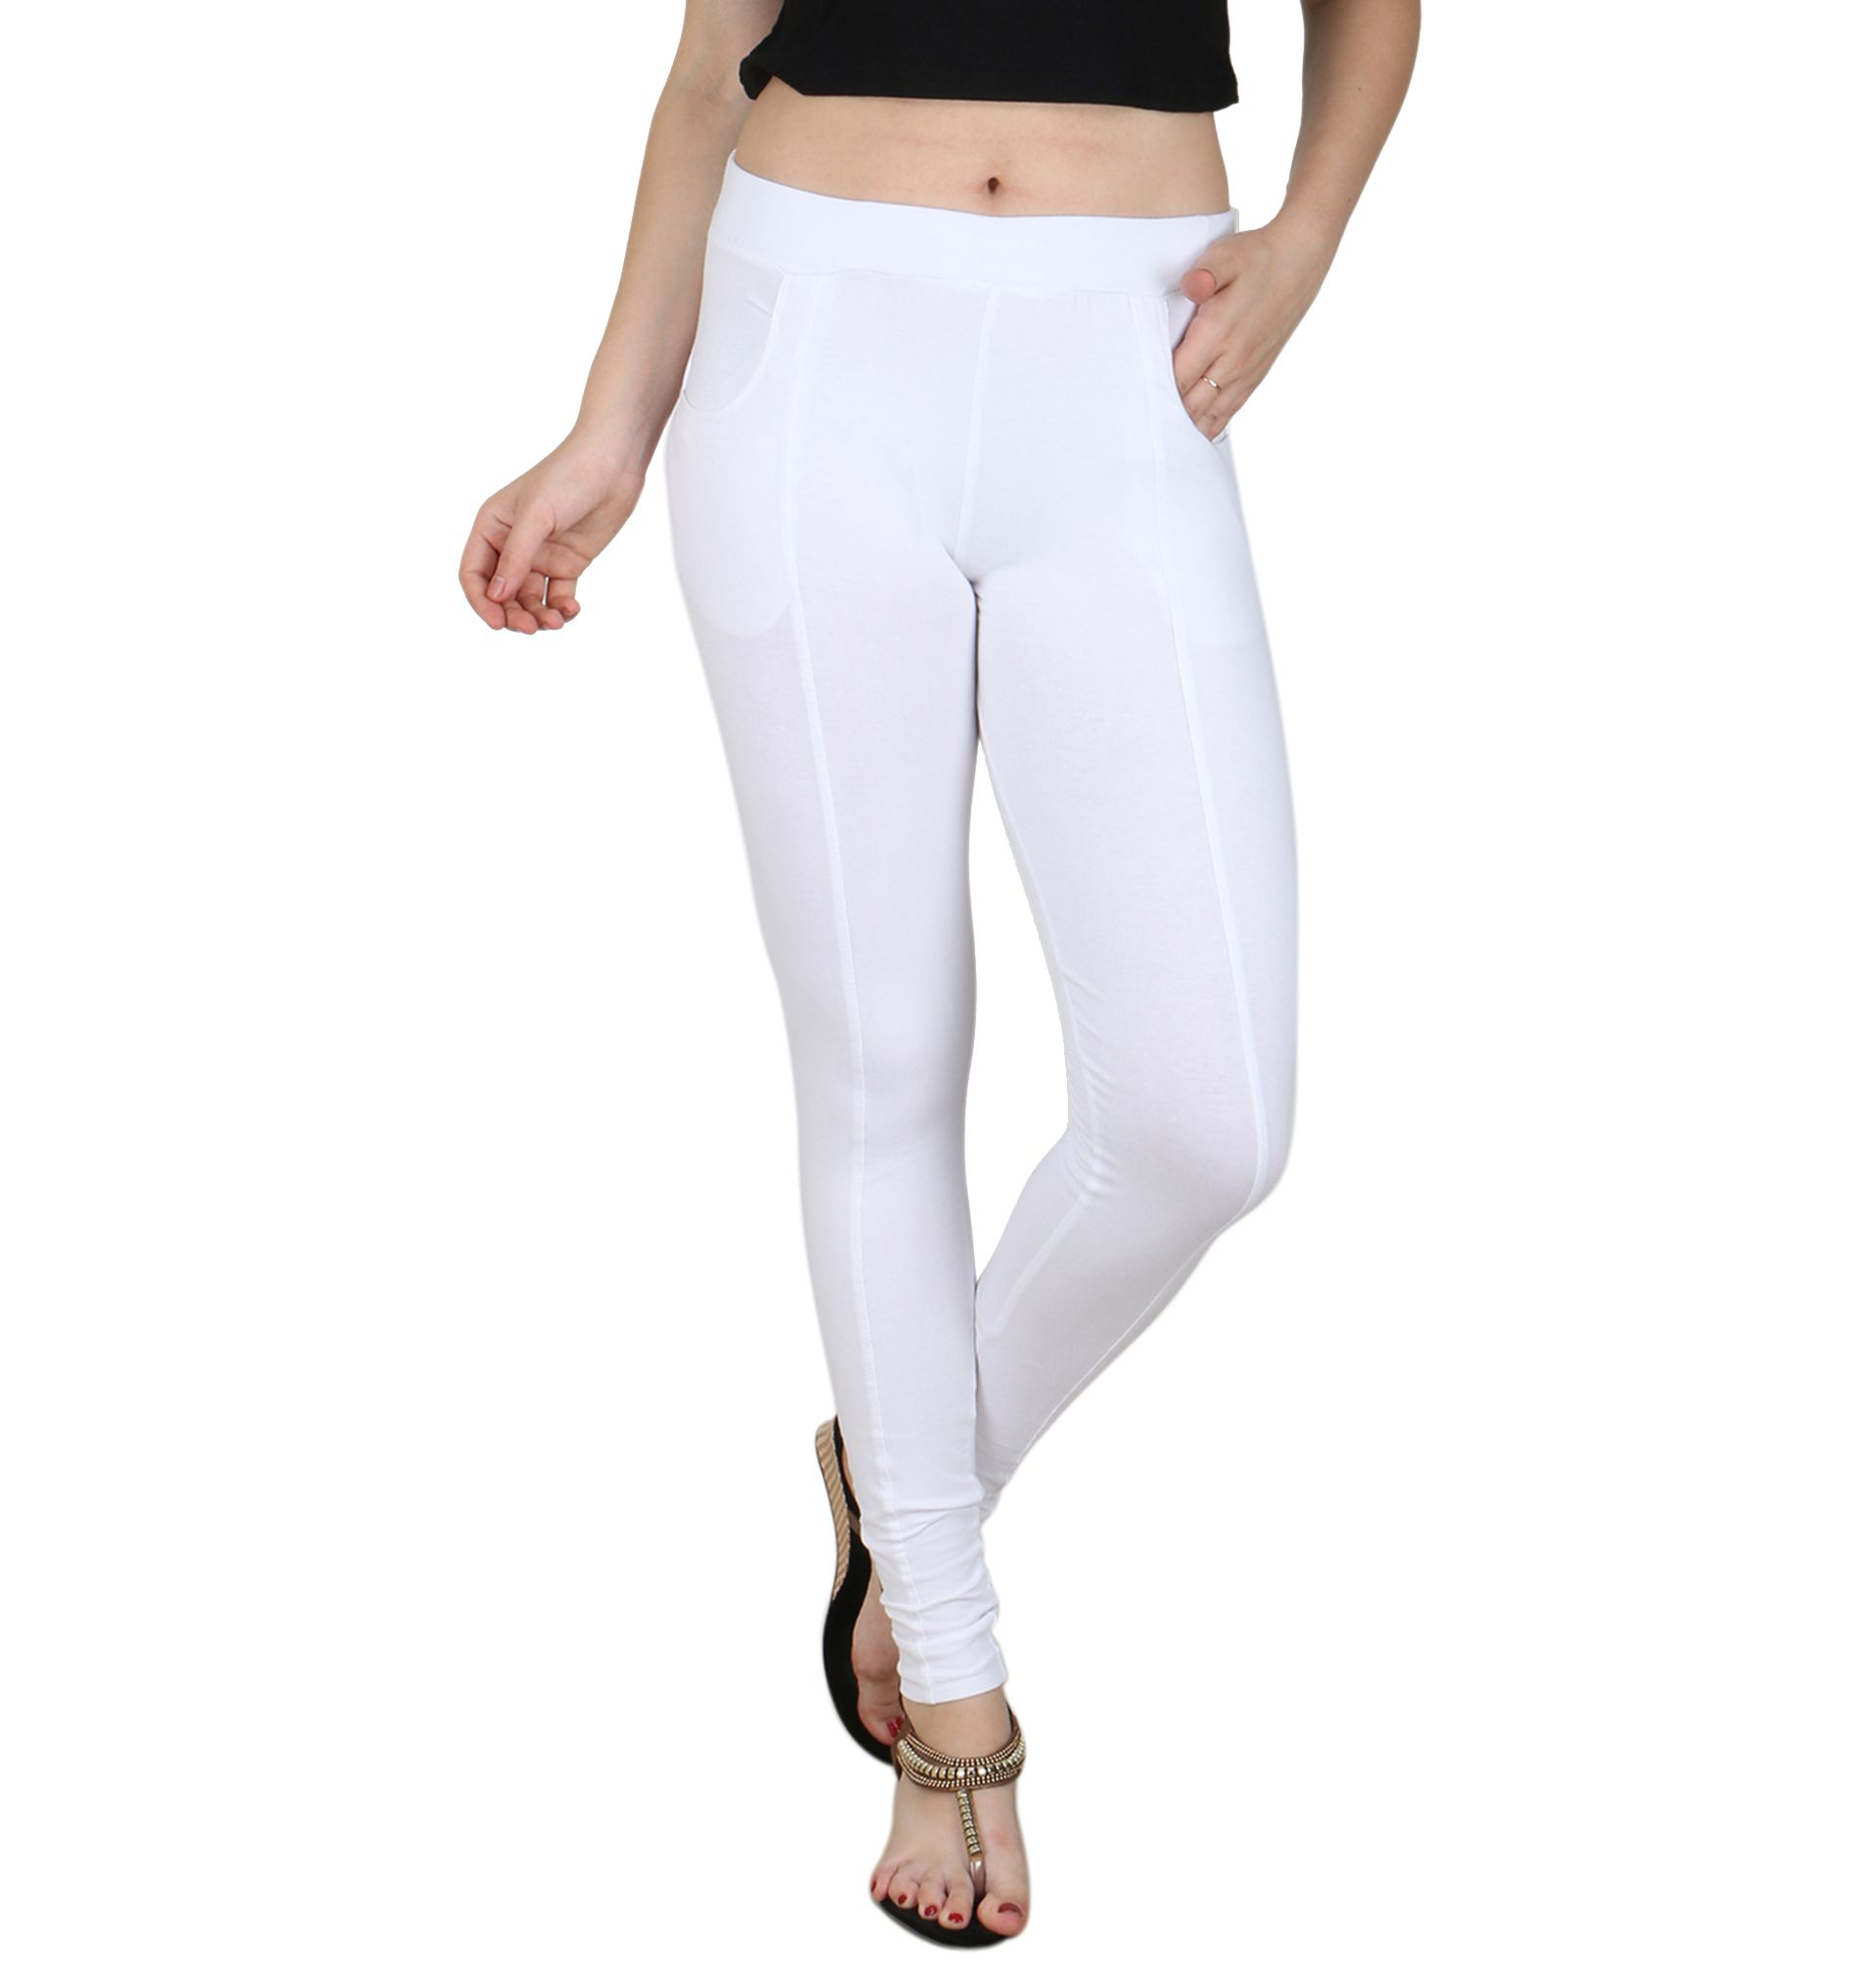 Faded Finch White Cotton Lycra Jeggings